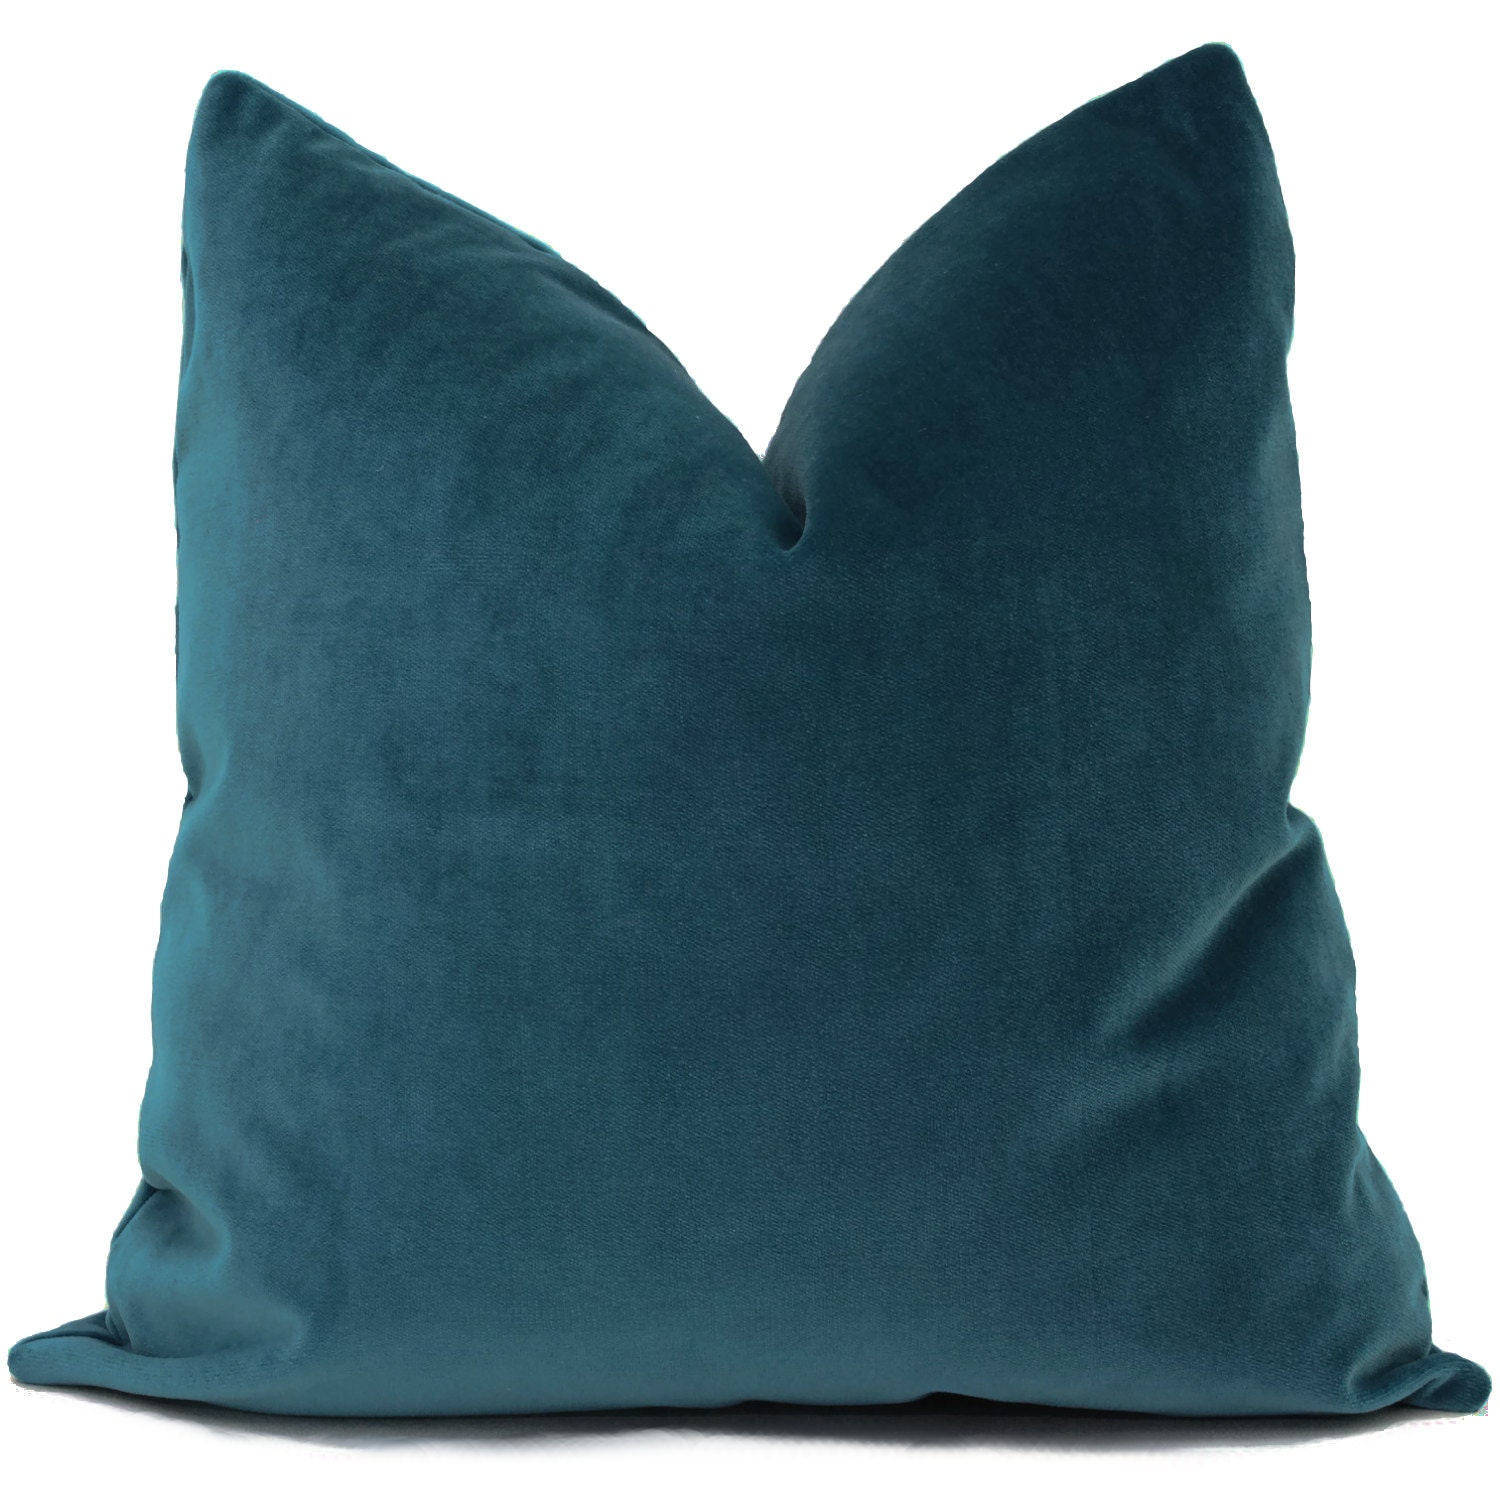 Velvet Pillow Cover Peacock Blue Decorative Pillow Cover